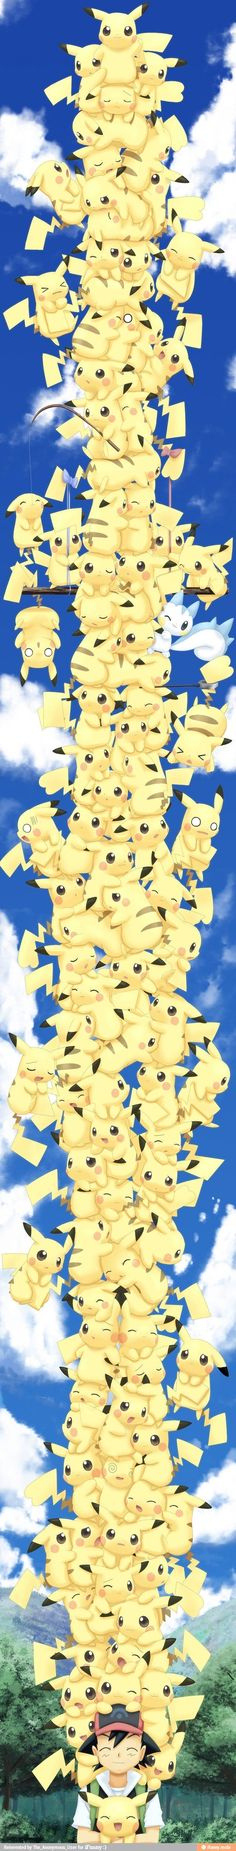 Attack of the Pikachus! The one with the big eyes that's getting a kiss is my favorite. :33 he's so confused.